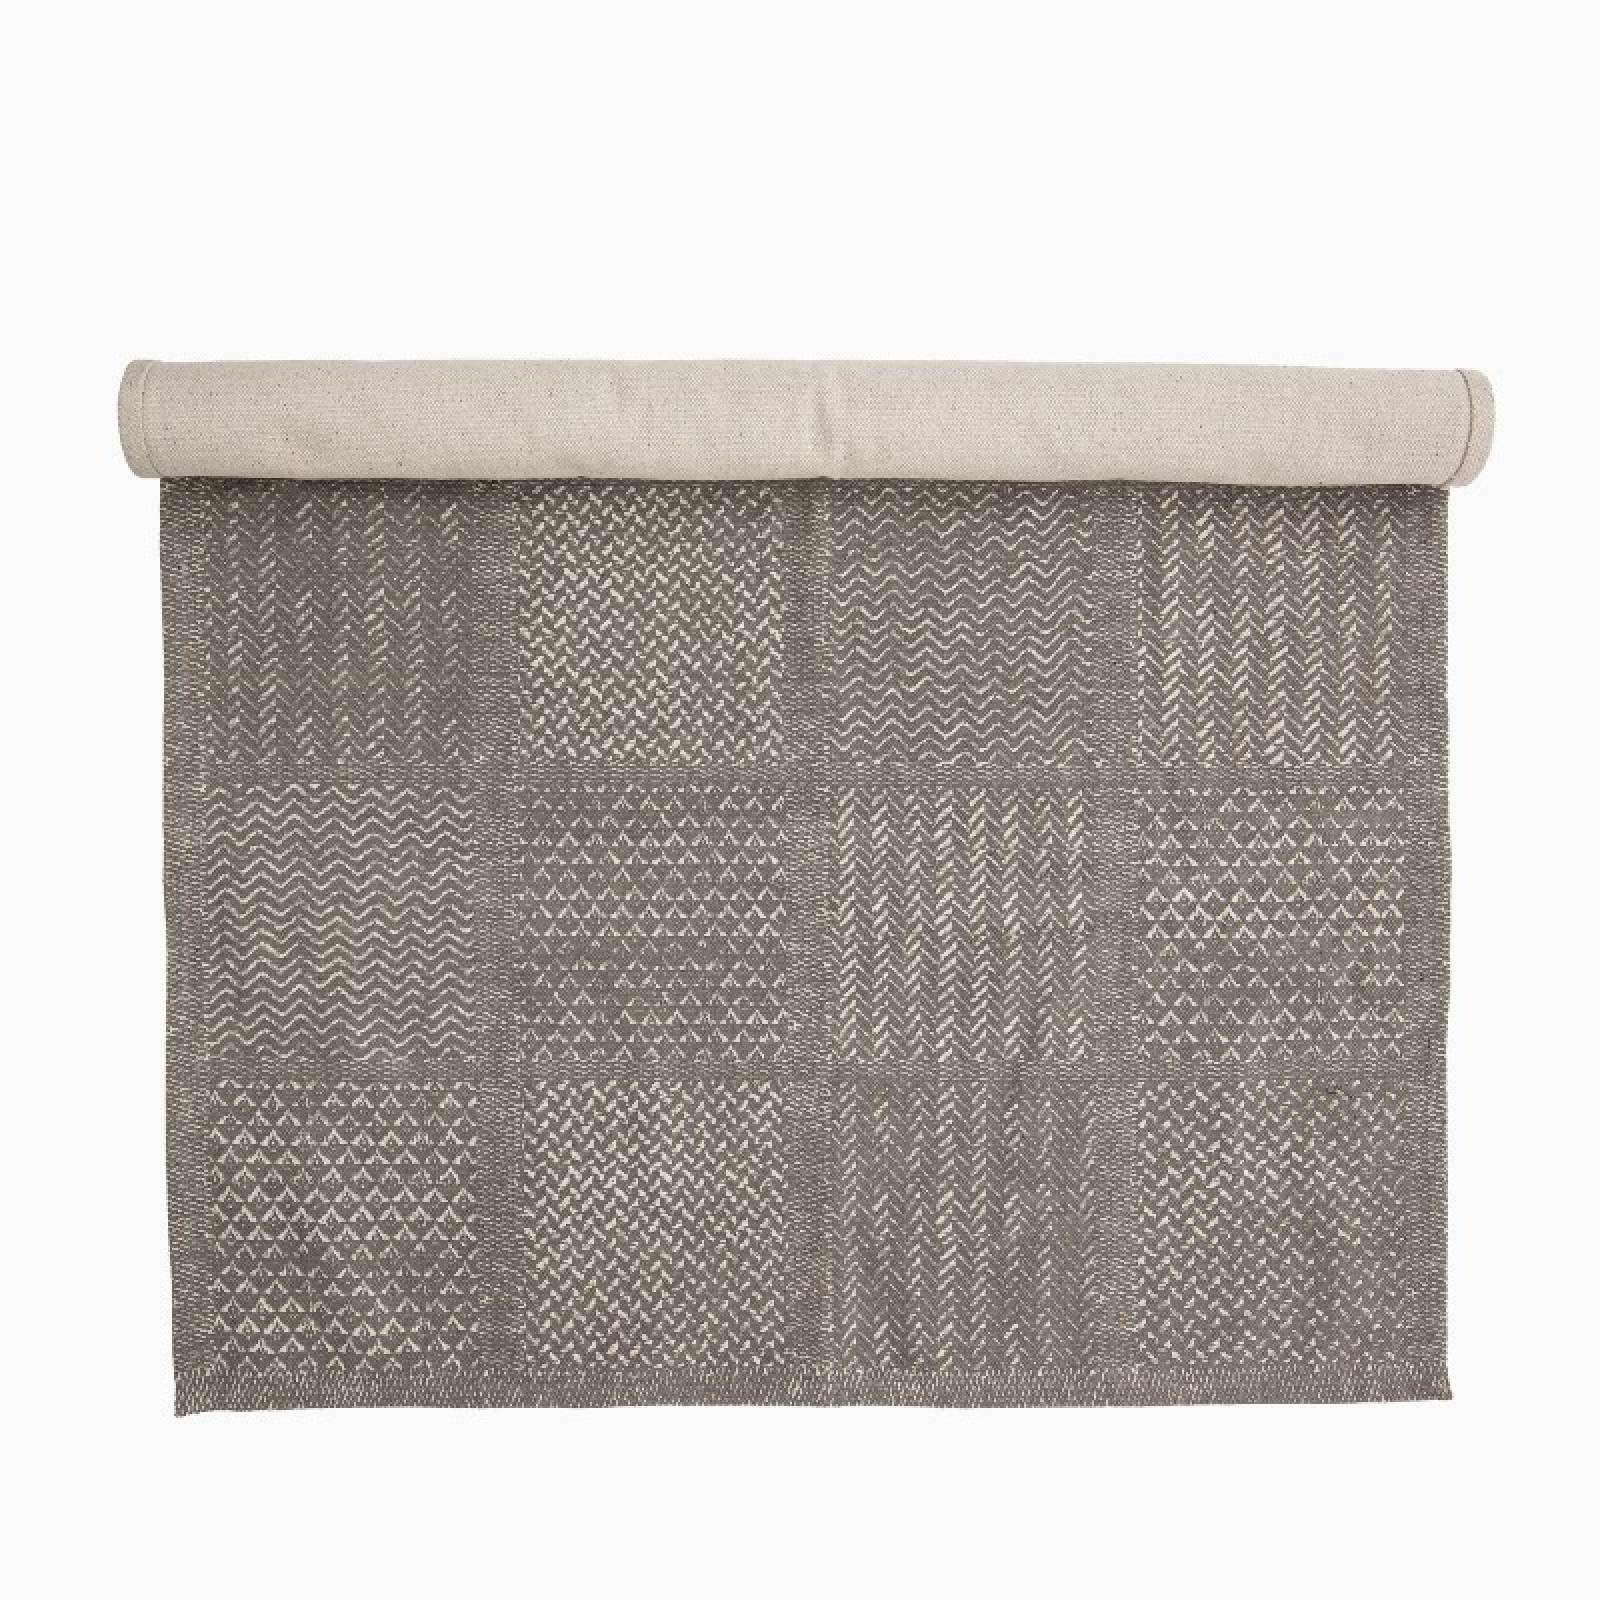 Multi-Textured Woven Cotton Rug In Grey